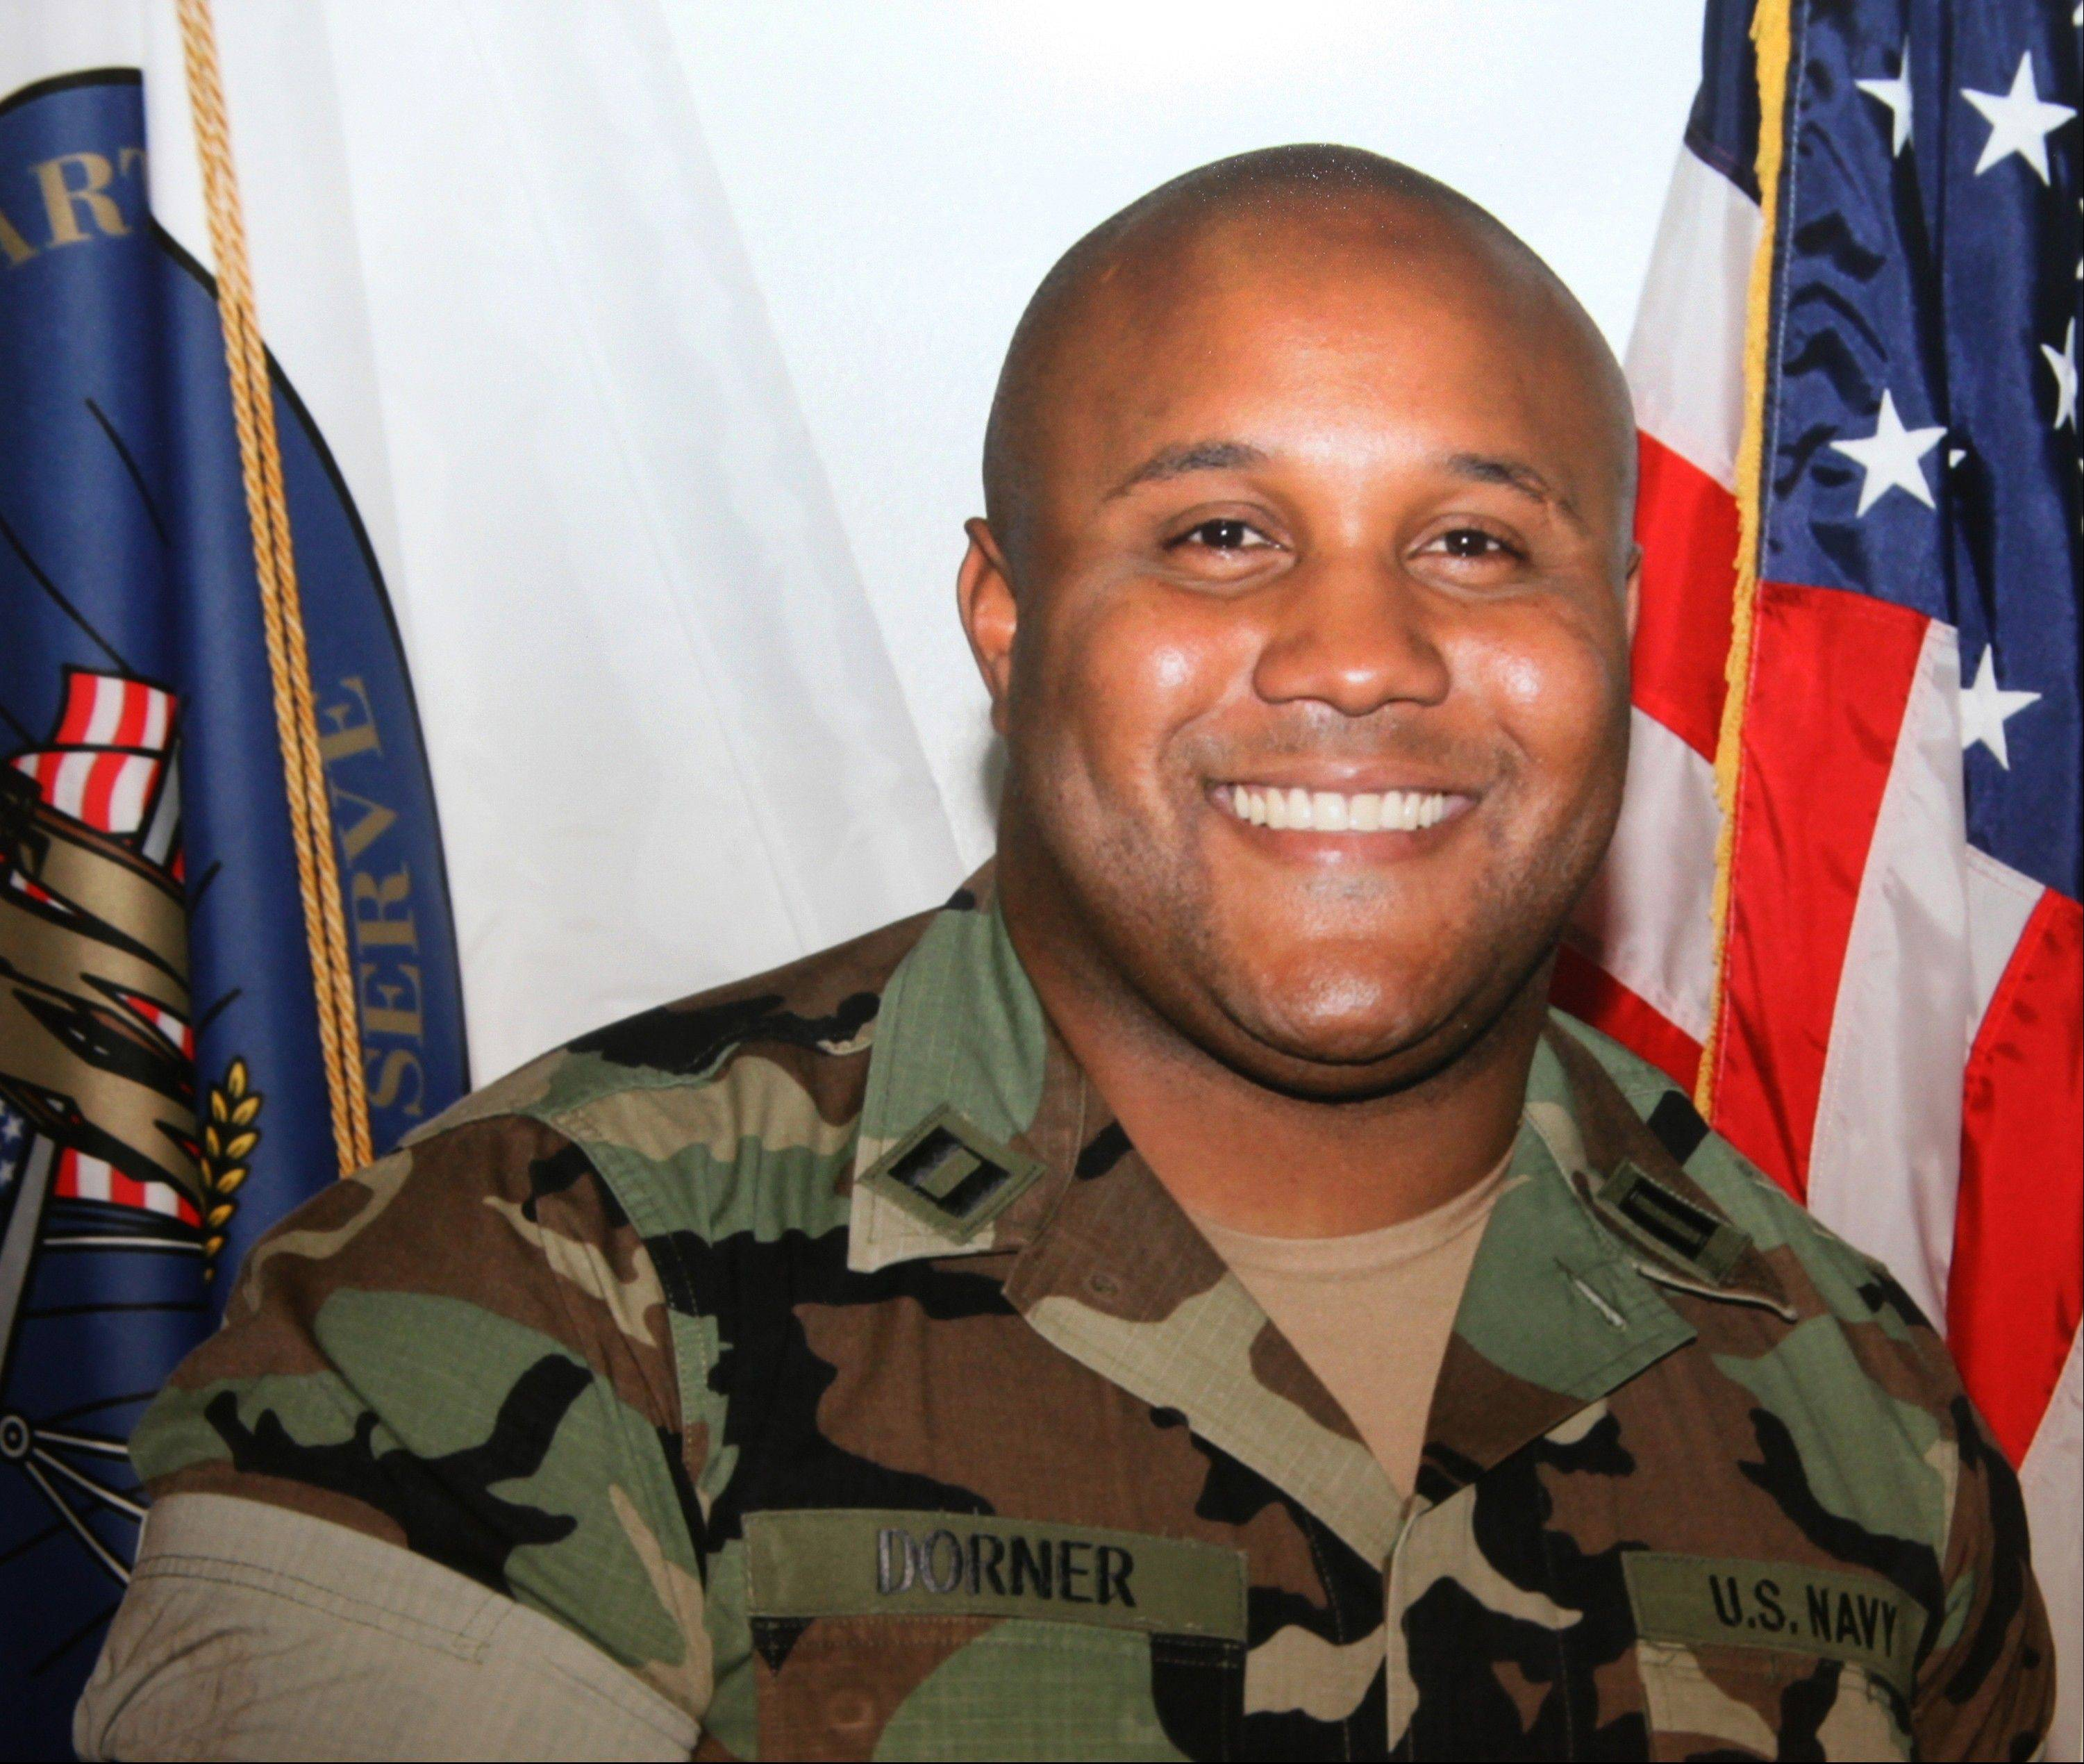 A civilian oversight board has found that eight Los Angeles police officers who mistakenly opened fired on two women during a manhunt for the rogue ex-cop Christopher Dorner violated department policy.